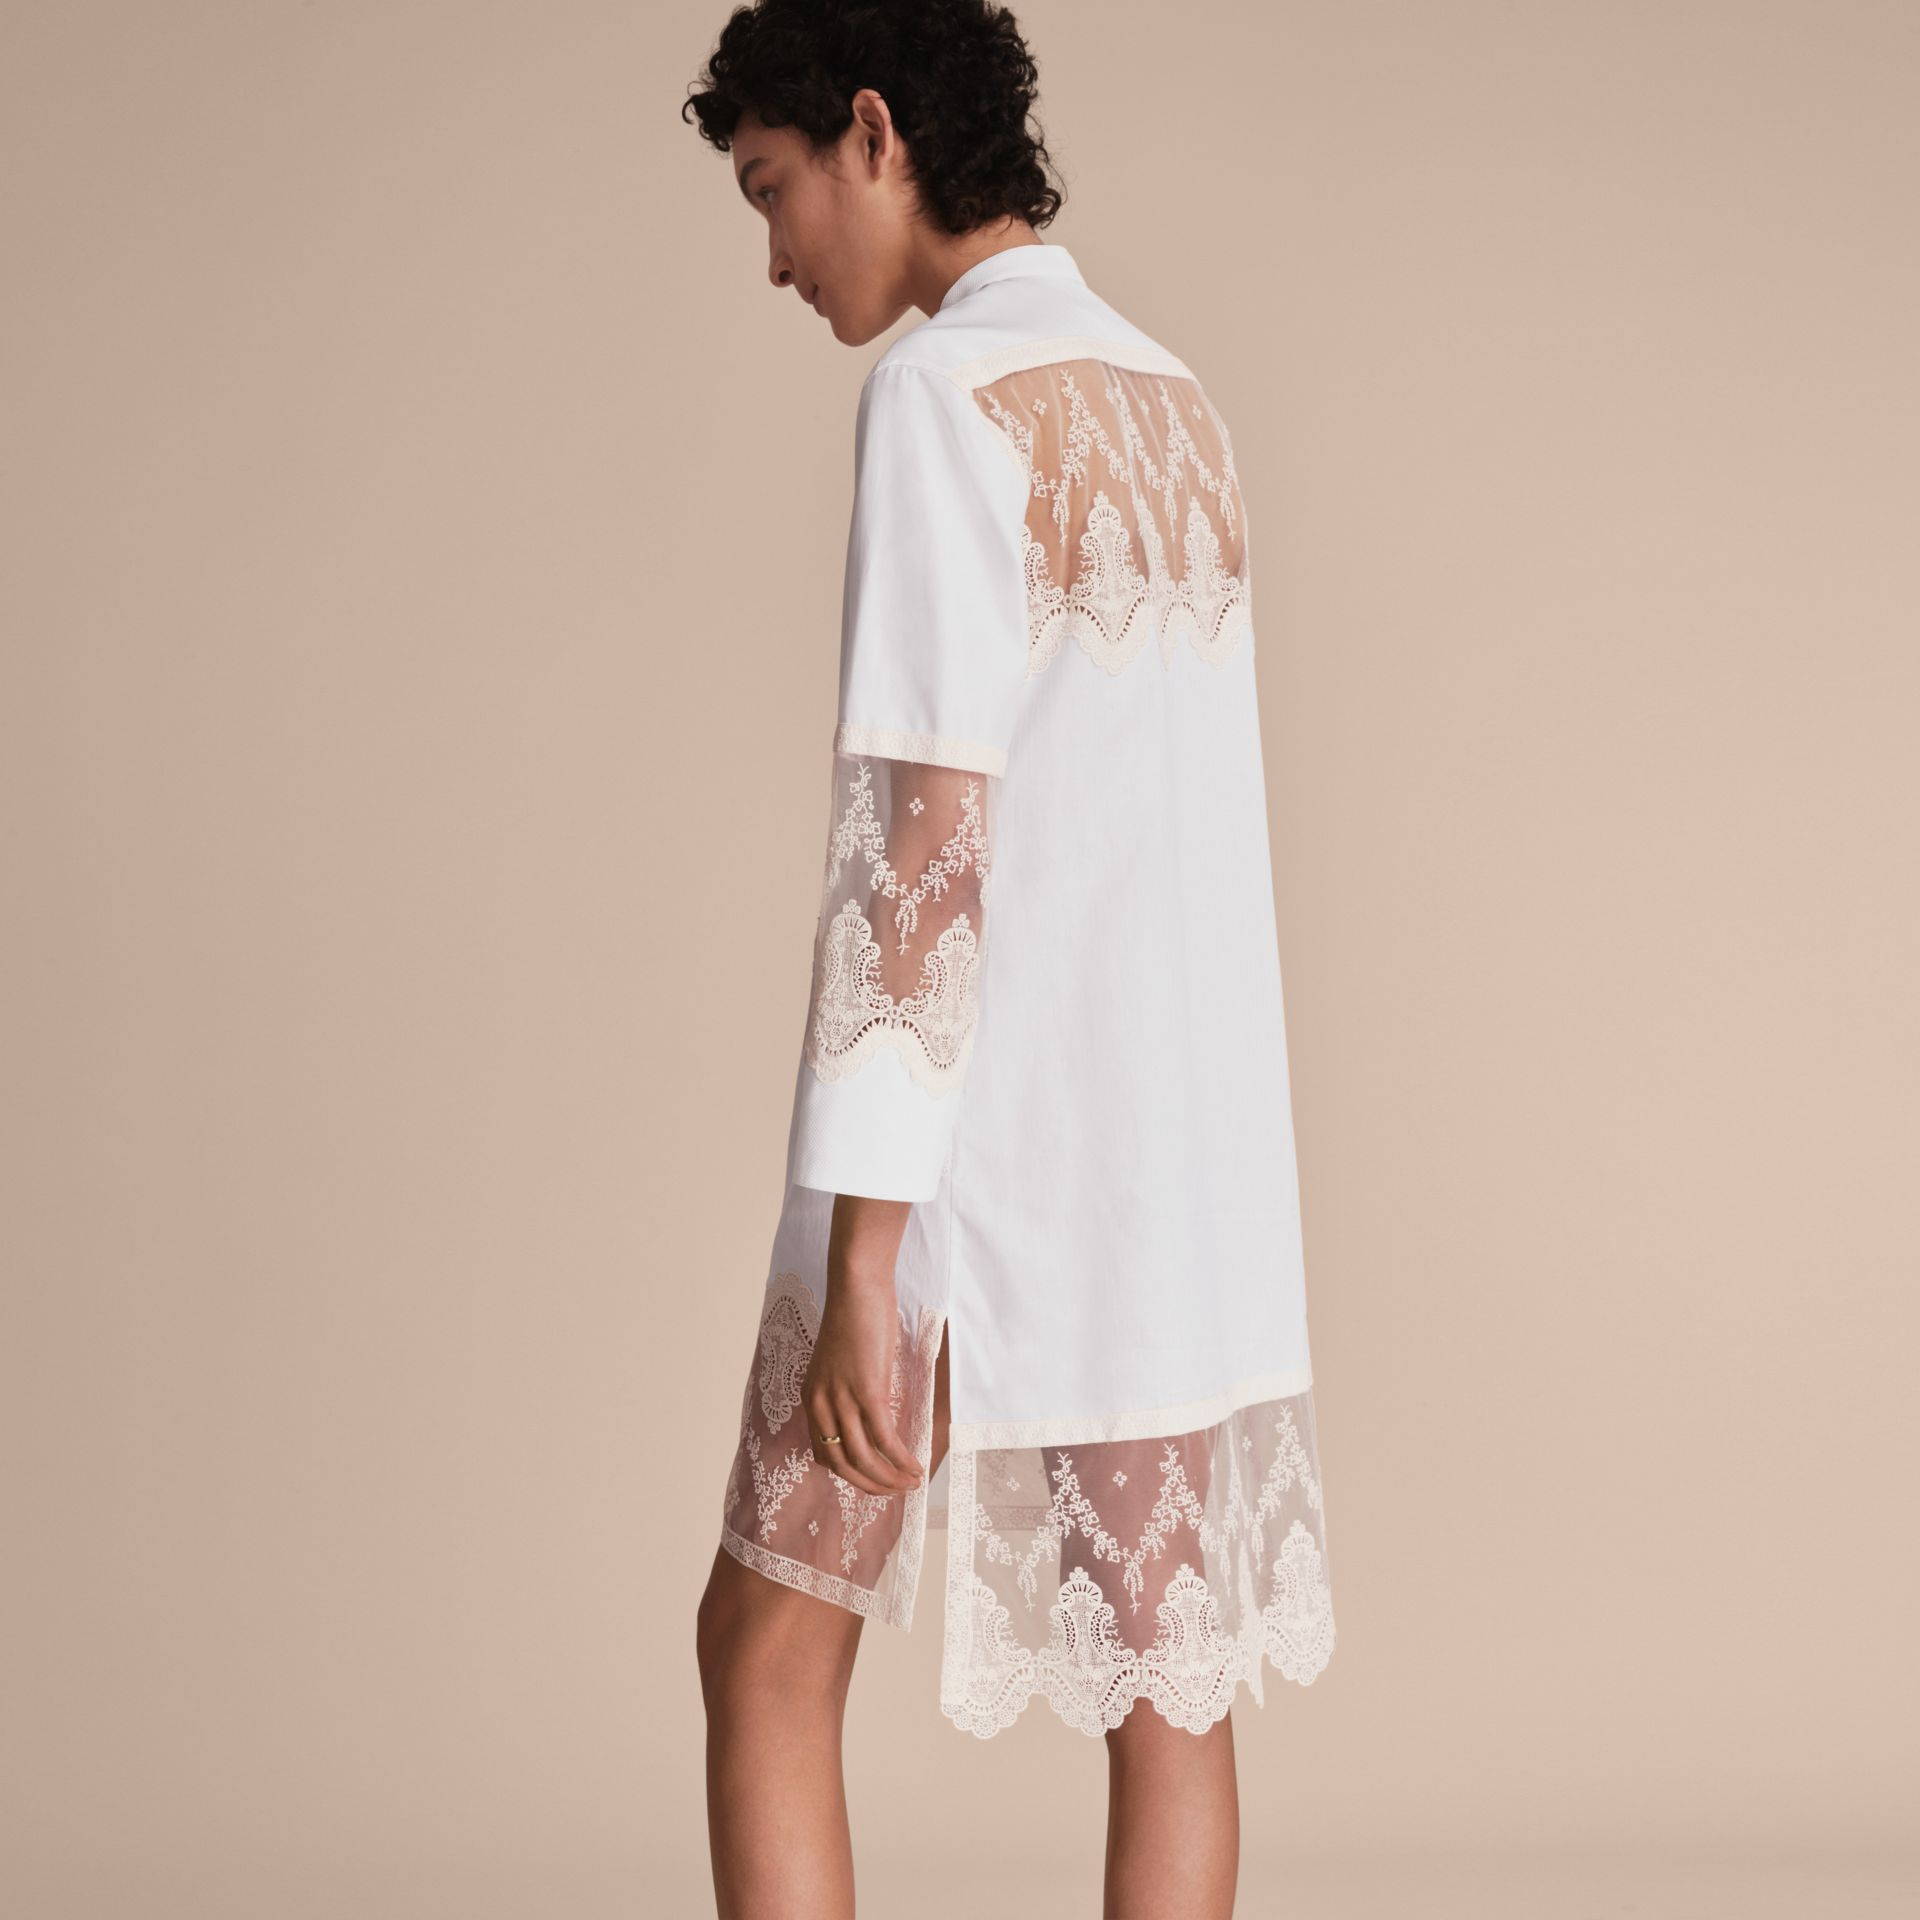 Lace Cutwork Cotton Shirt Dress in White - Women | Burberry - gallery image 3